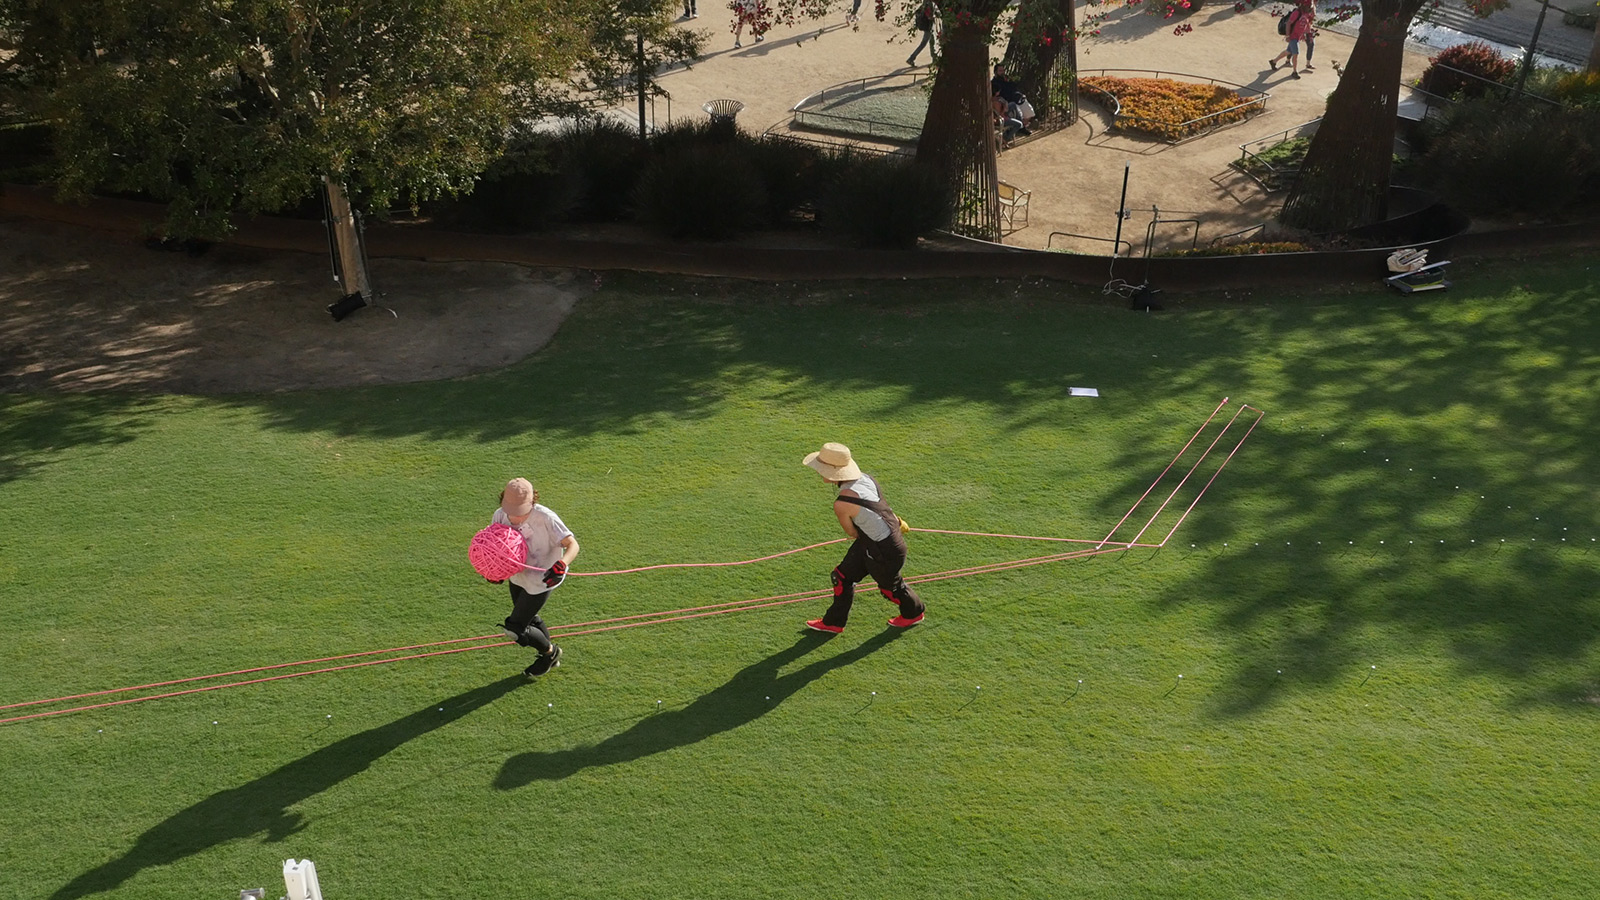 Overhead view of two women on a large lawn, unspooling a large spool of bright pink rope